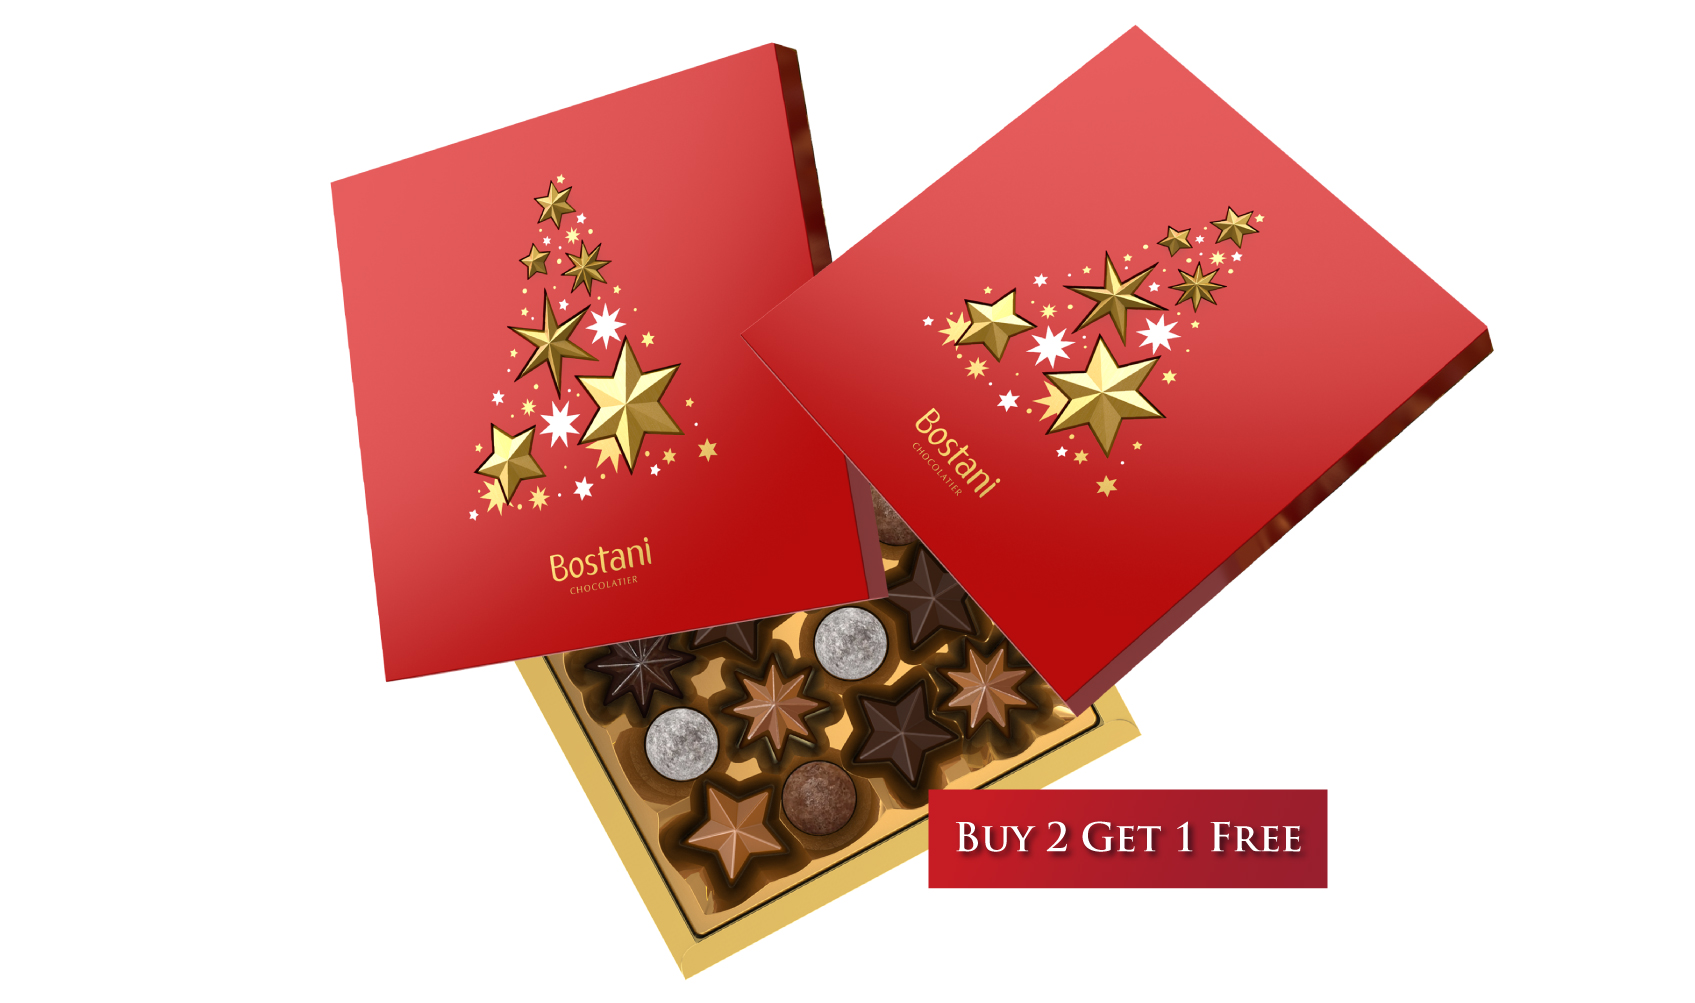 Pick It Up Christmas Box Offer Buy 2 get 1 Free